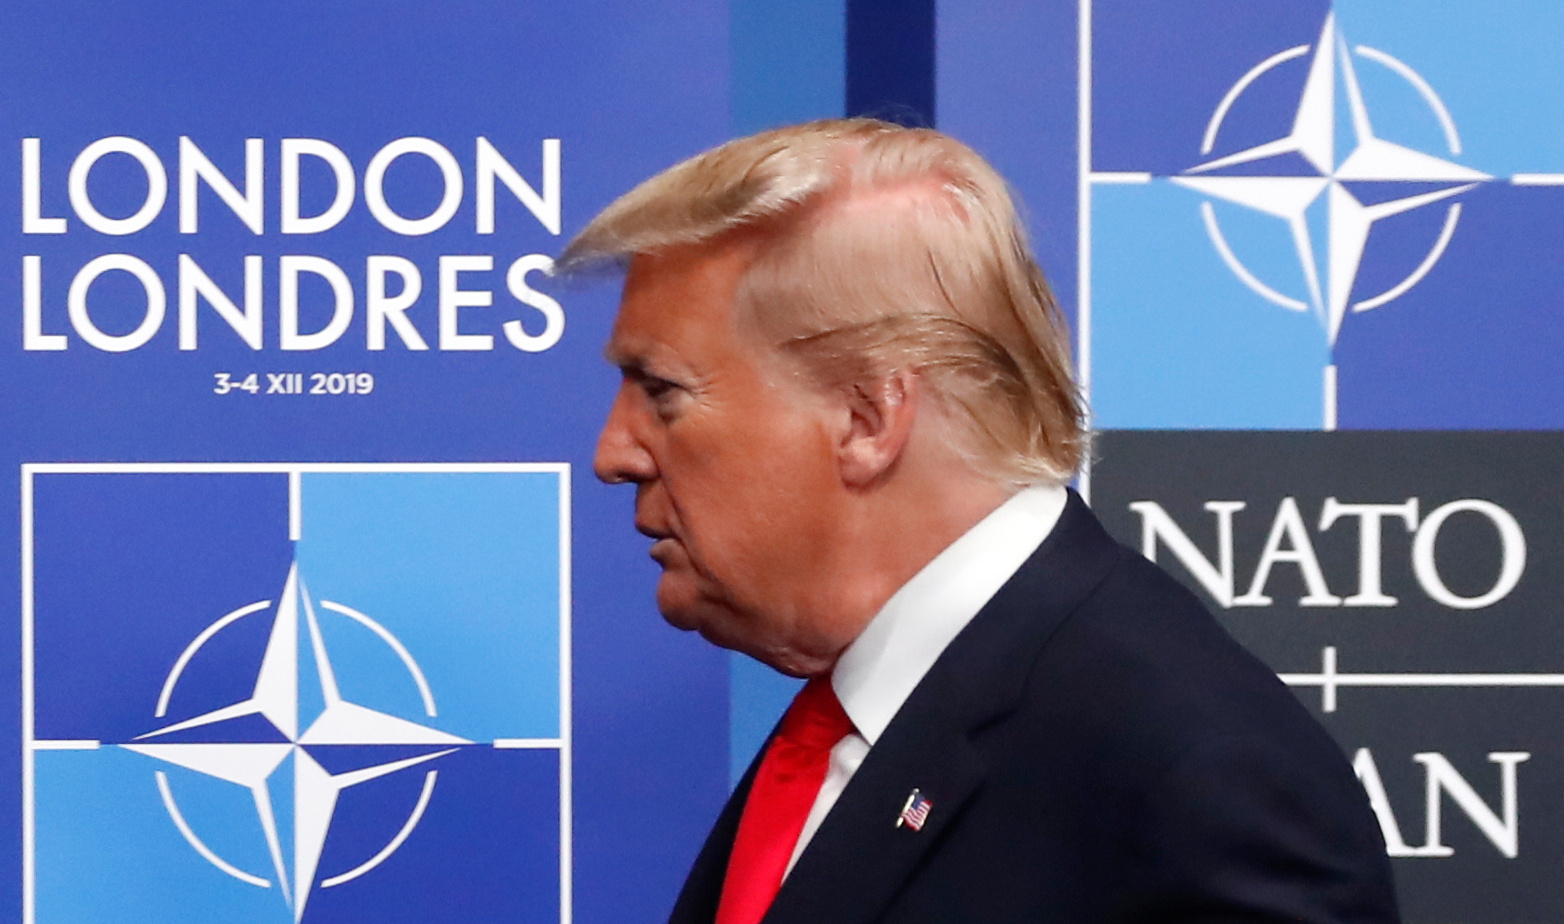 US President Donald Trump arrives for the NATO summit at the Grove hotel in Watford, northeast of London on December 4, 2019. (Credit: CHRISTIAN HARTMANN/POOL/AFP via Getty Images)